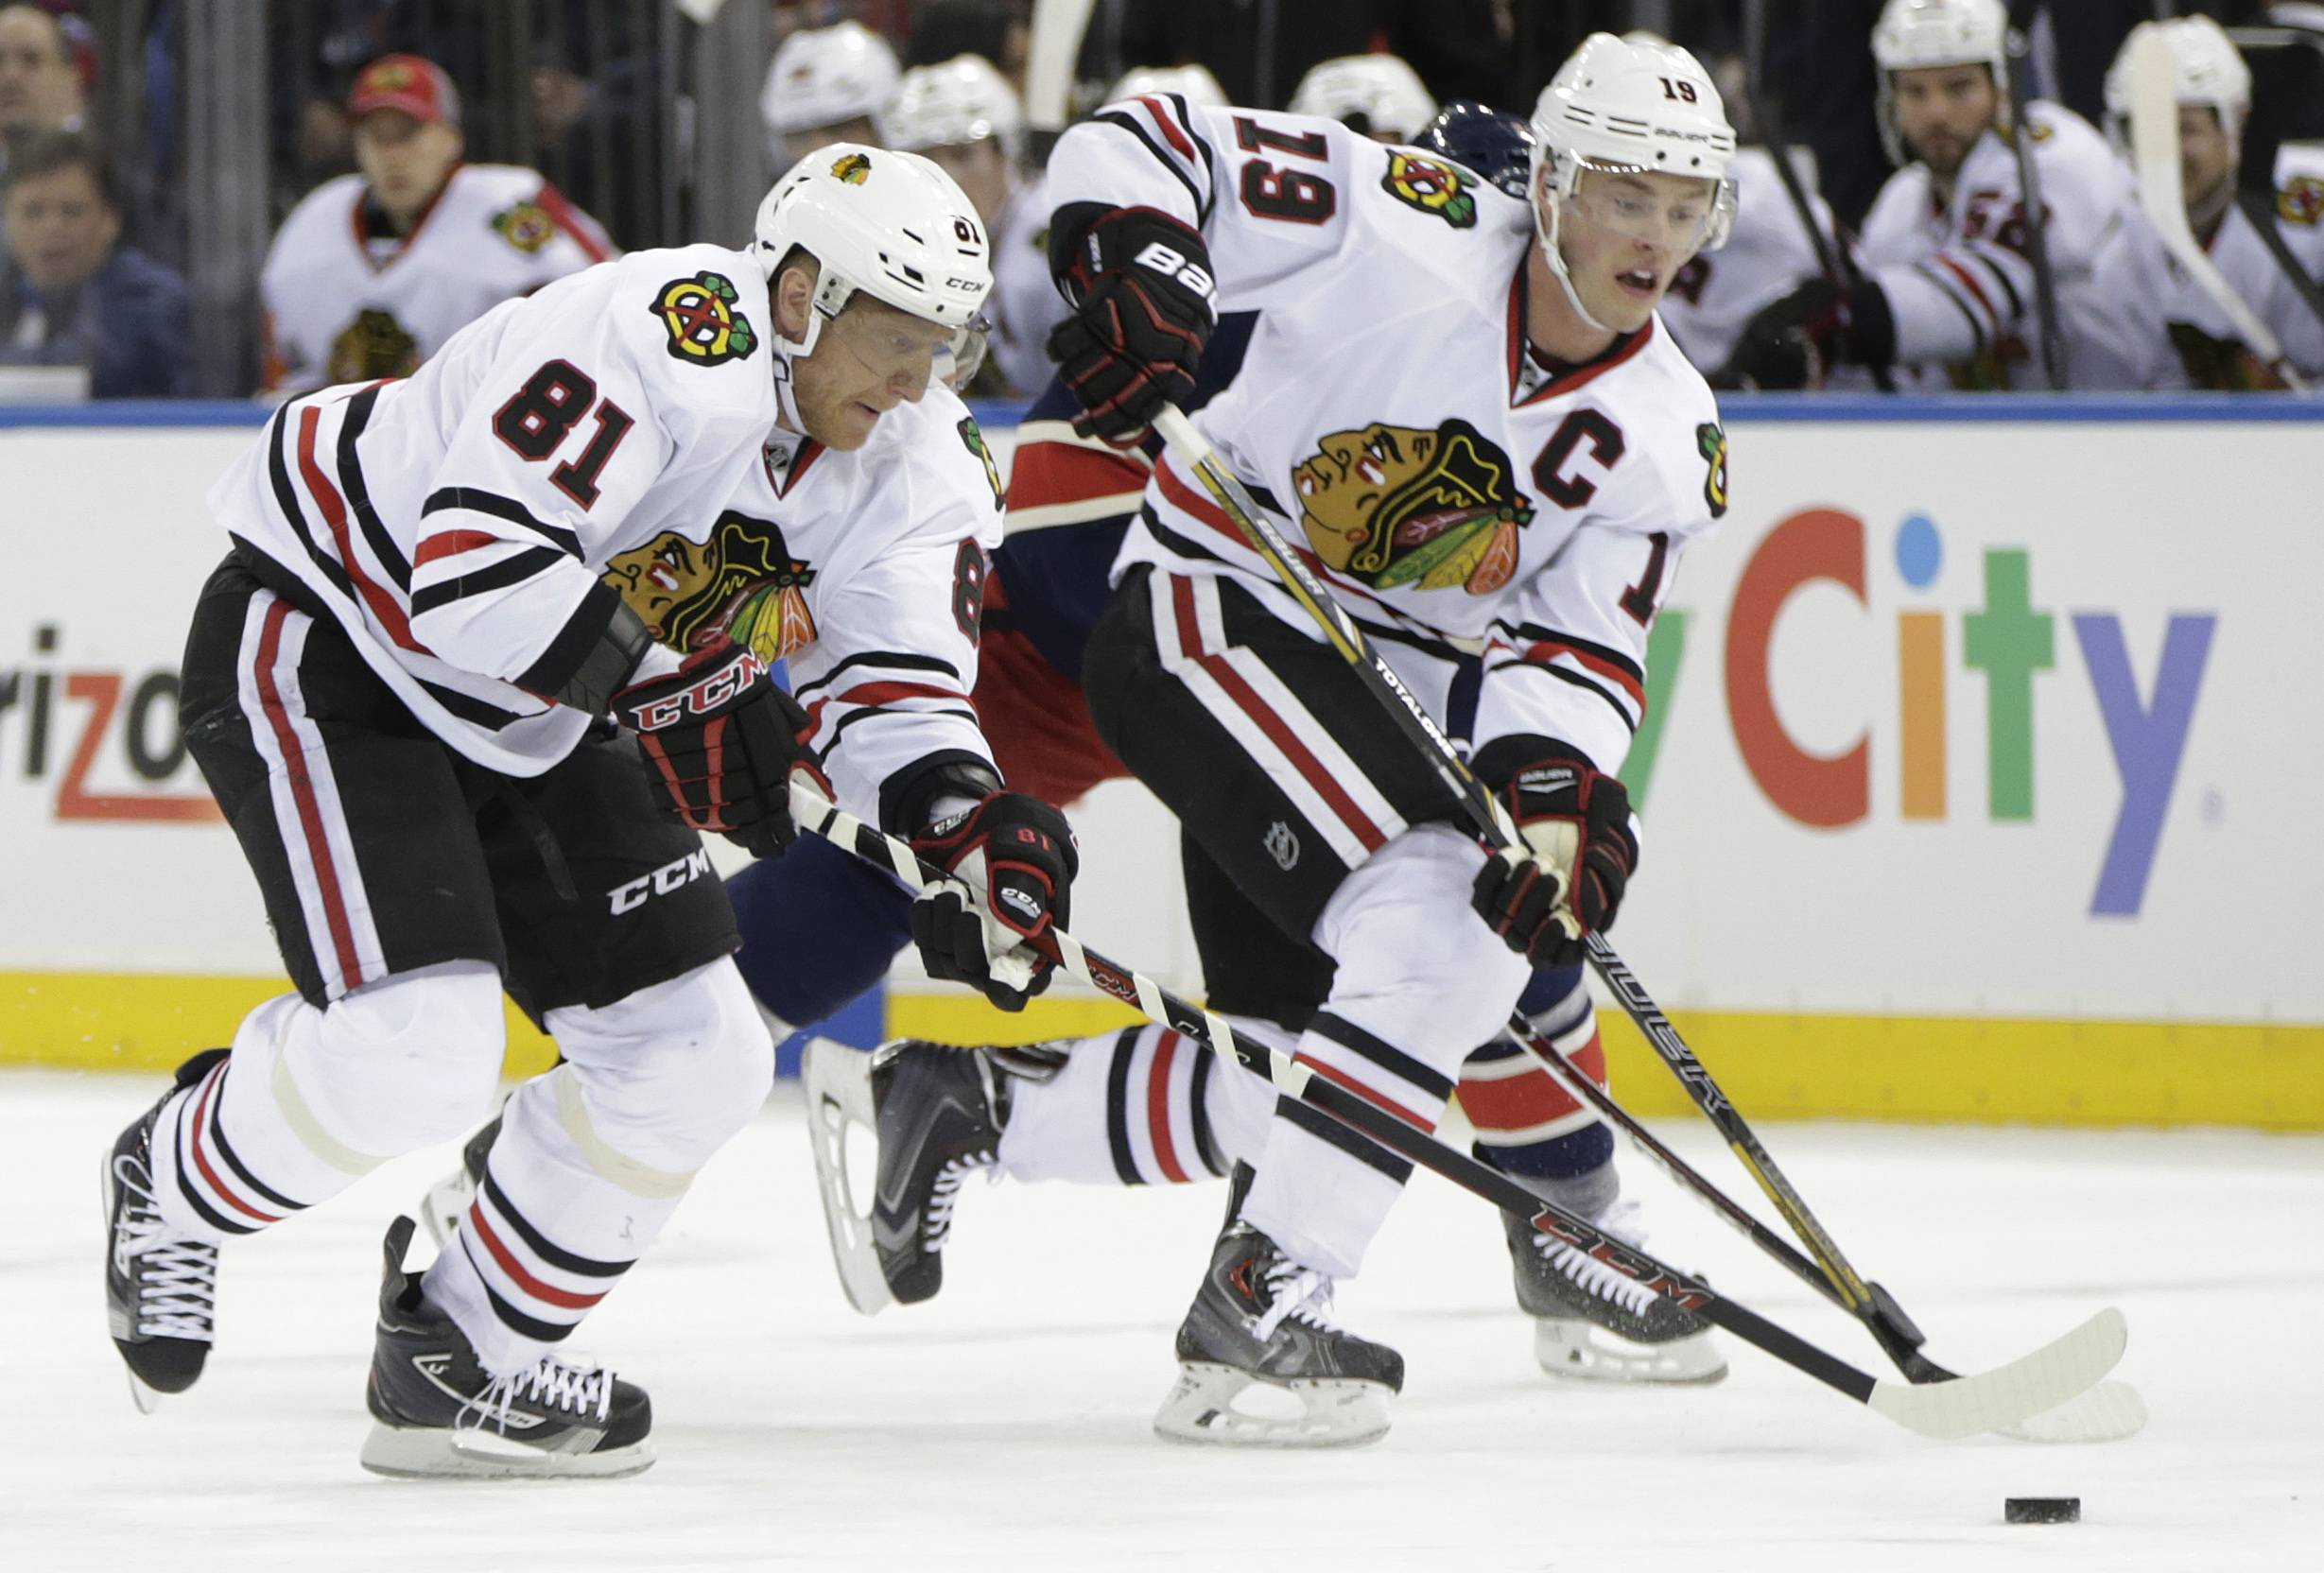 The Blackhawks' Marian Hossa (81) and Jonathan Toews move the puck up the ice during the first period Thursday against the Rangers at Madison Square Garden in New York.